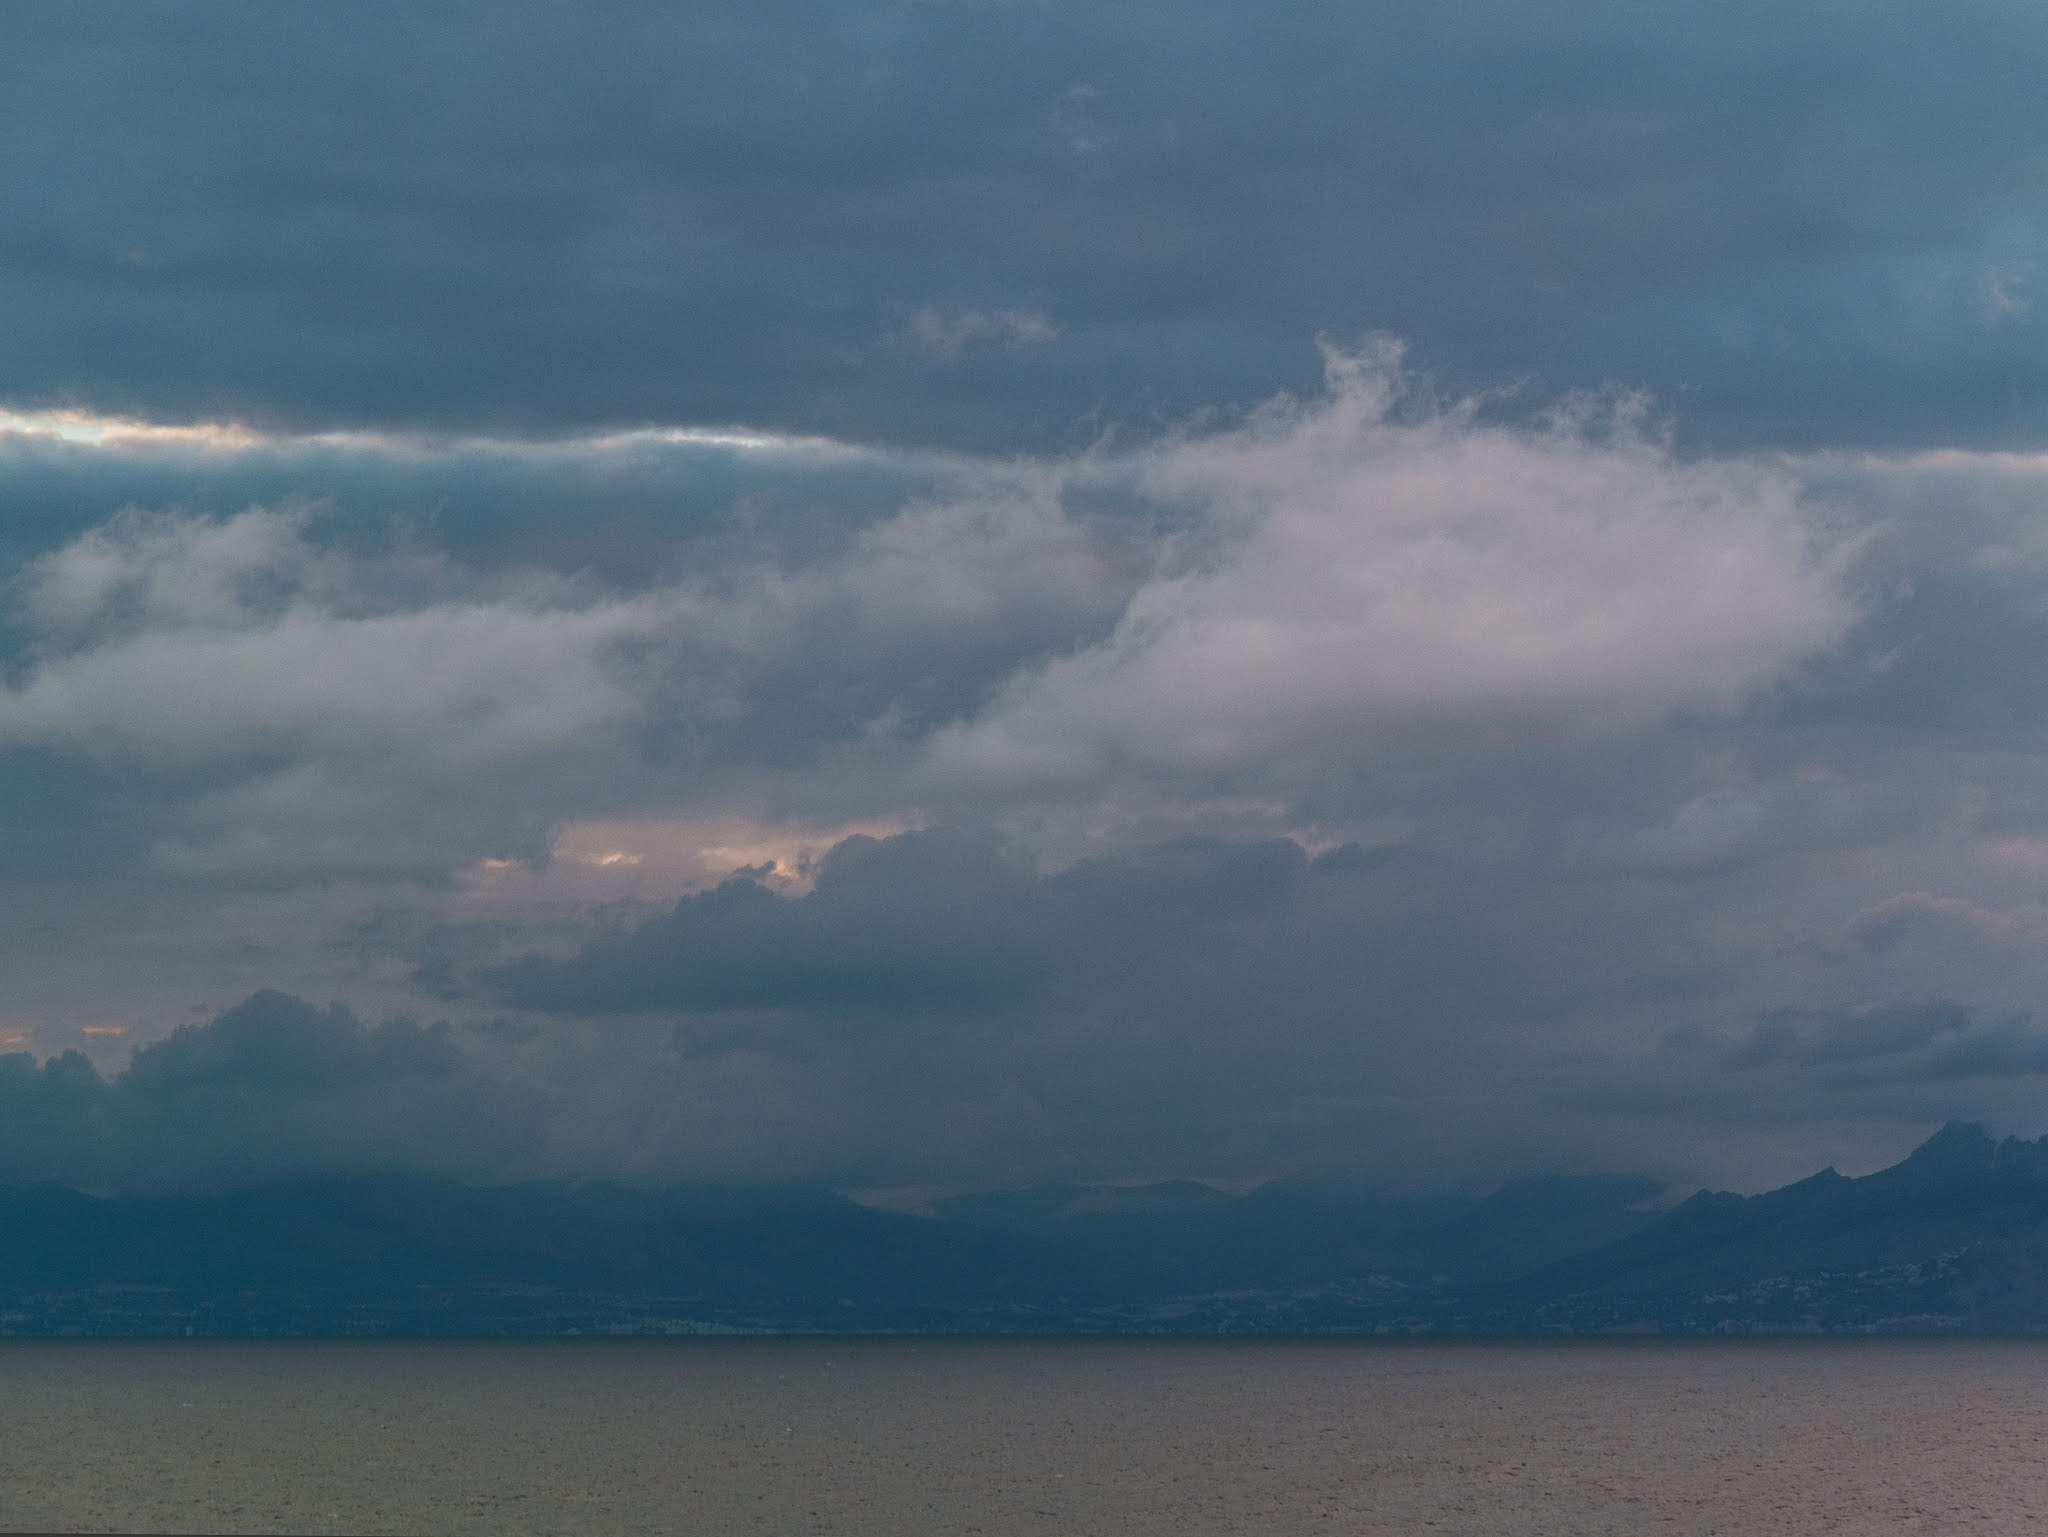 Clouds over the mountains on the coast of Spain from the sea.